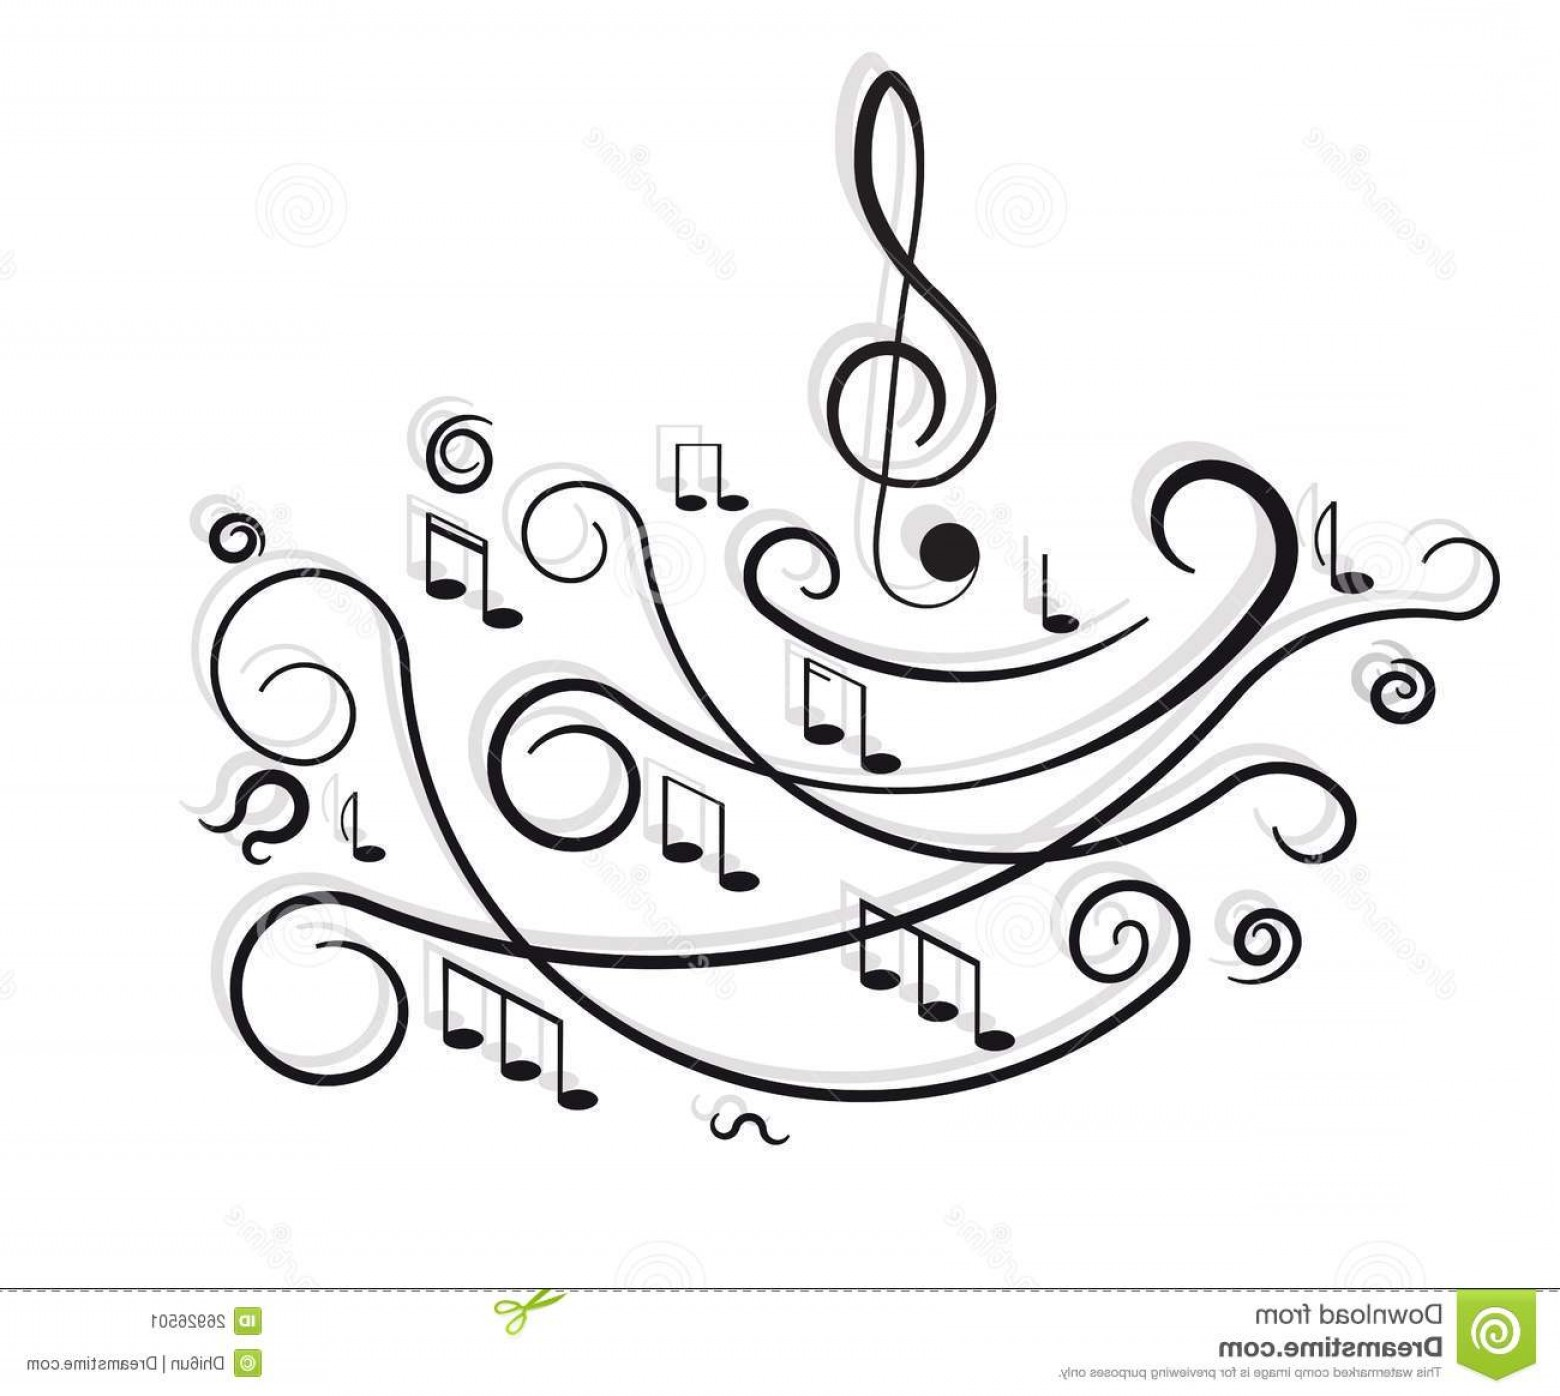 Flourish Music Note Silhouette Vector: Stock Image Musical Notes Ornament Swirls Image